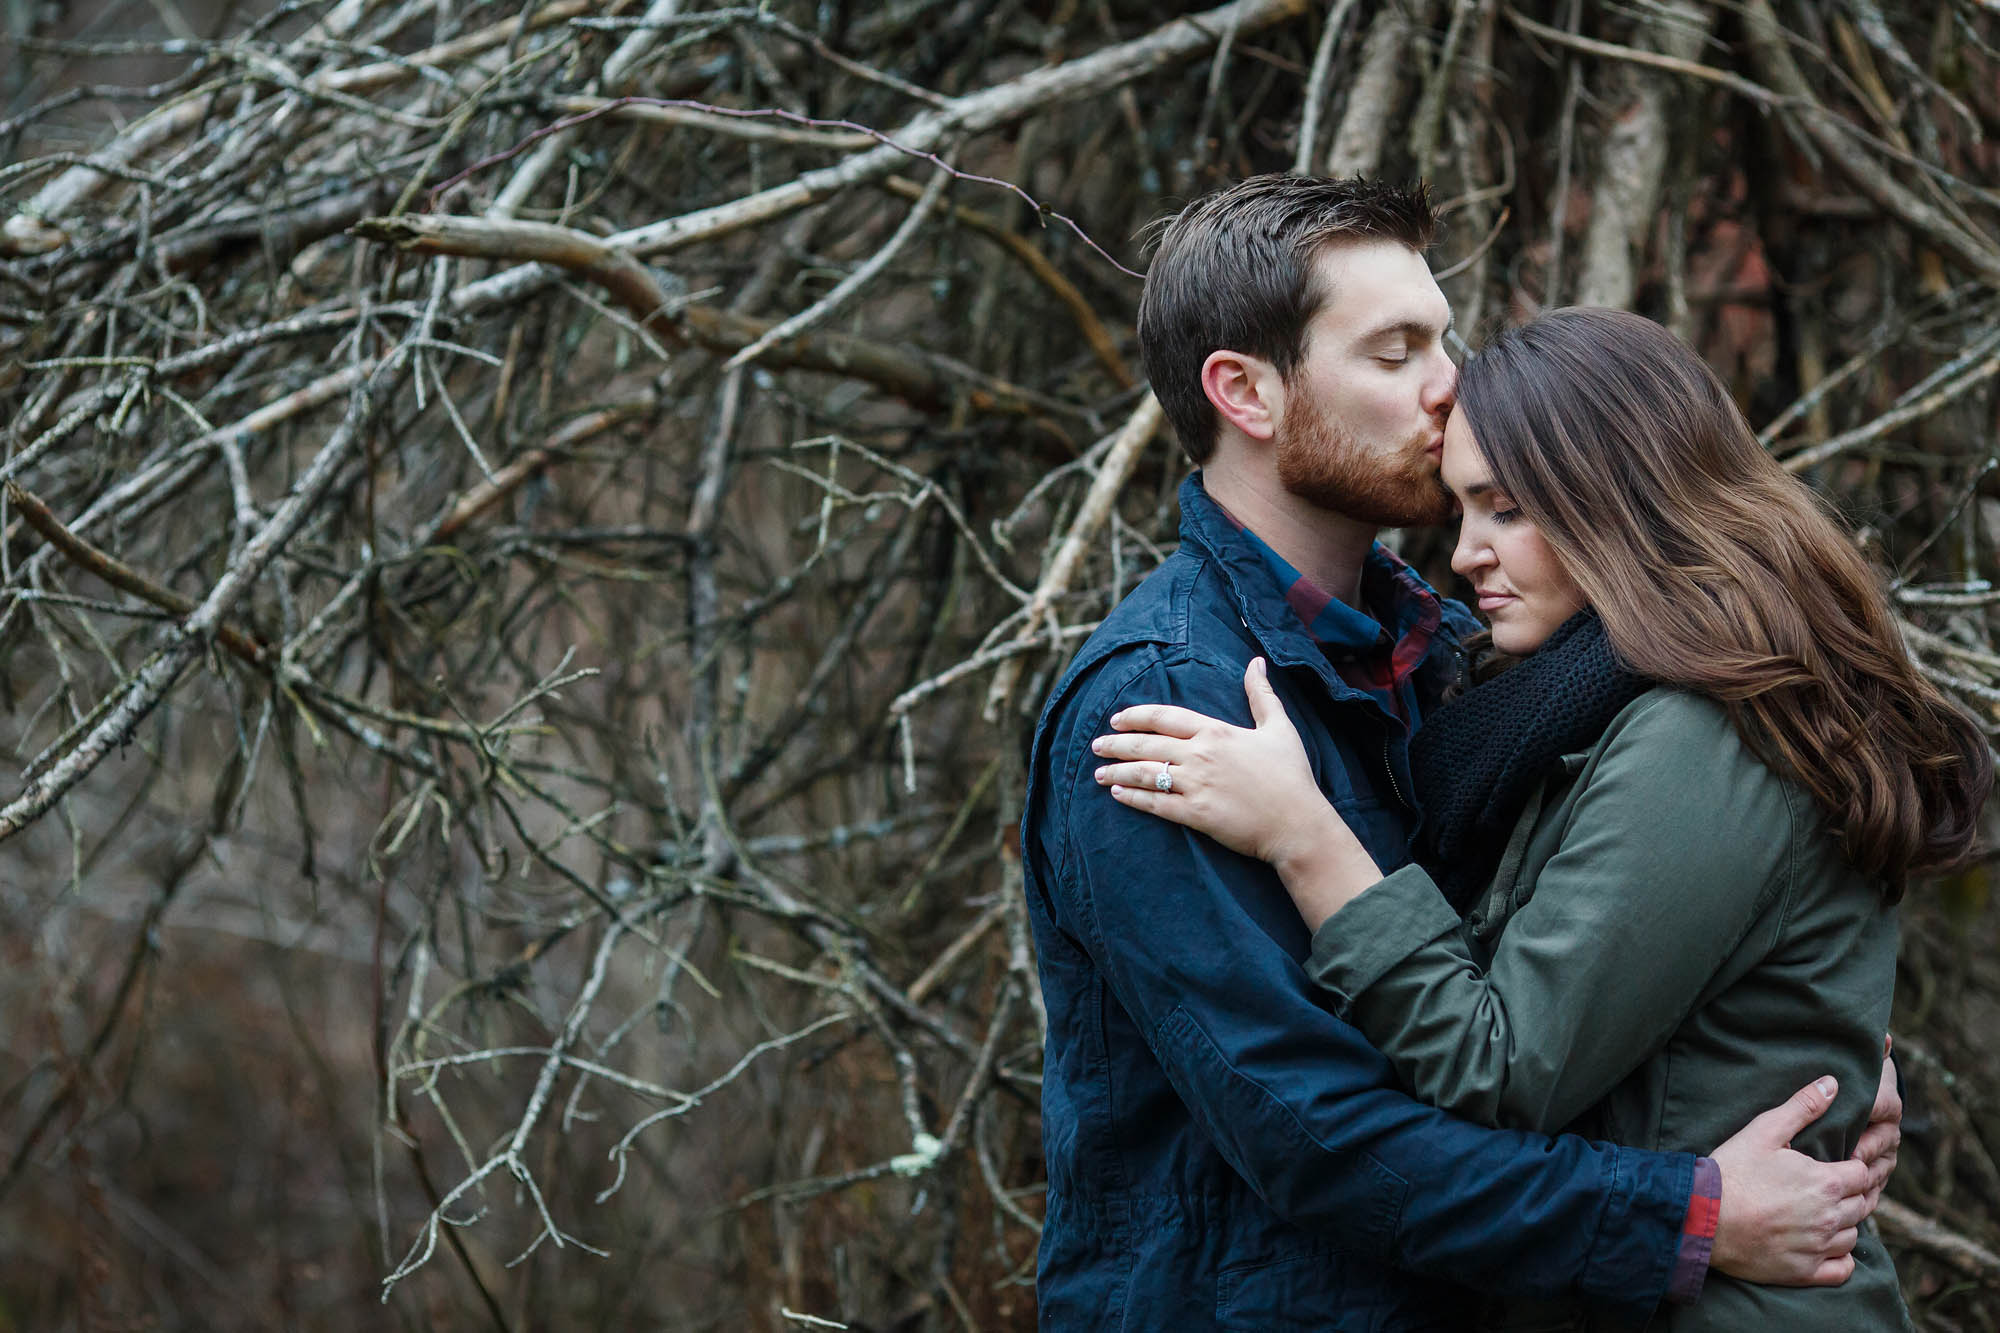 Man kisses women's forehead during a winter engagement photo session.